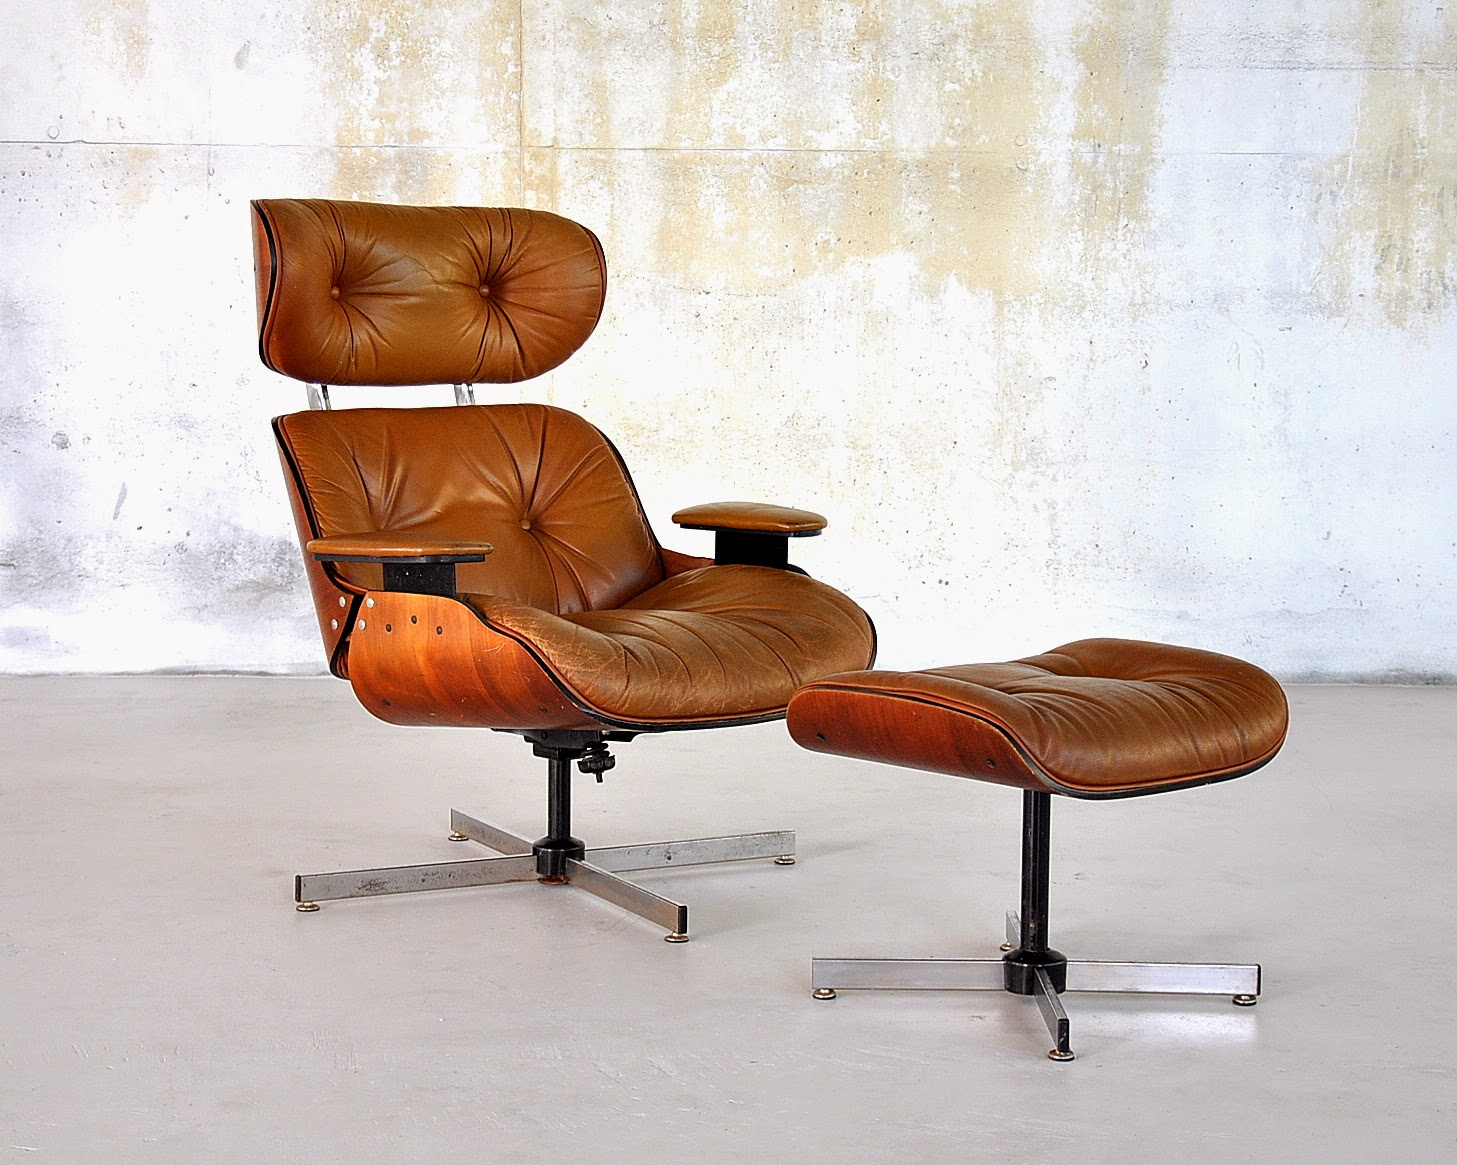 Eames Lounge Select Modern: Eames Leather Lounge Chair & Ottoman